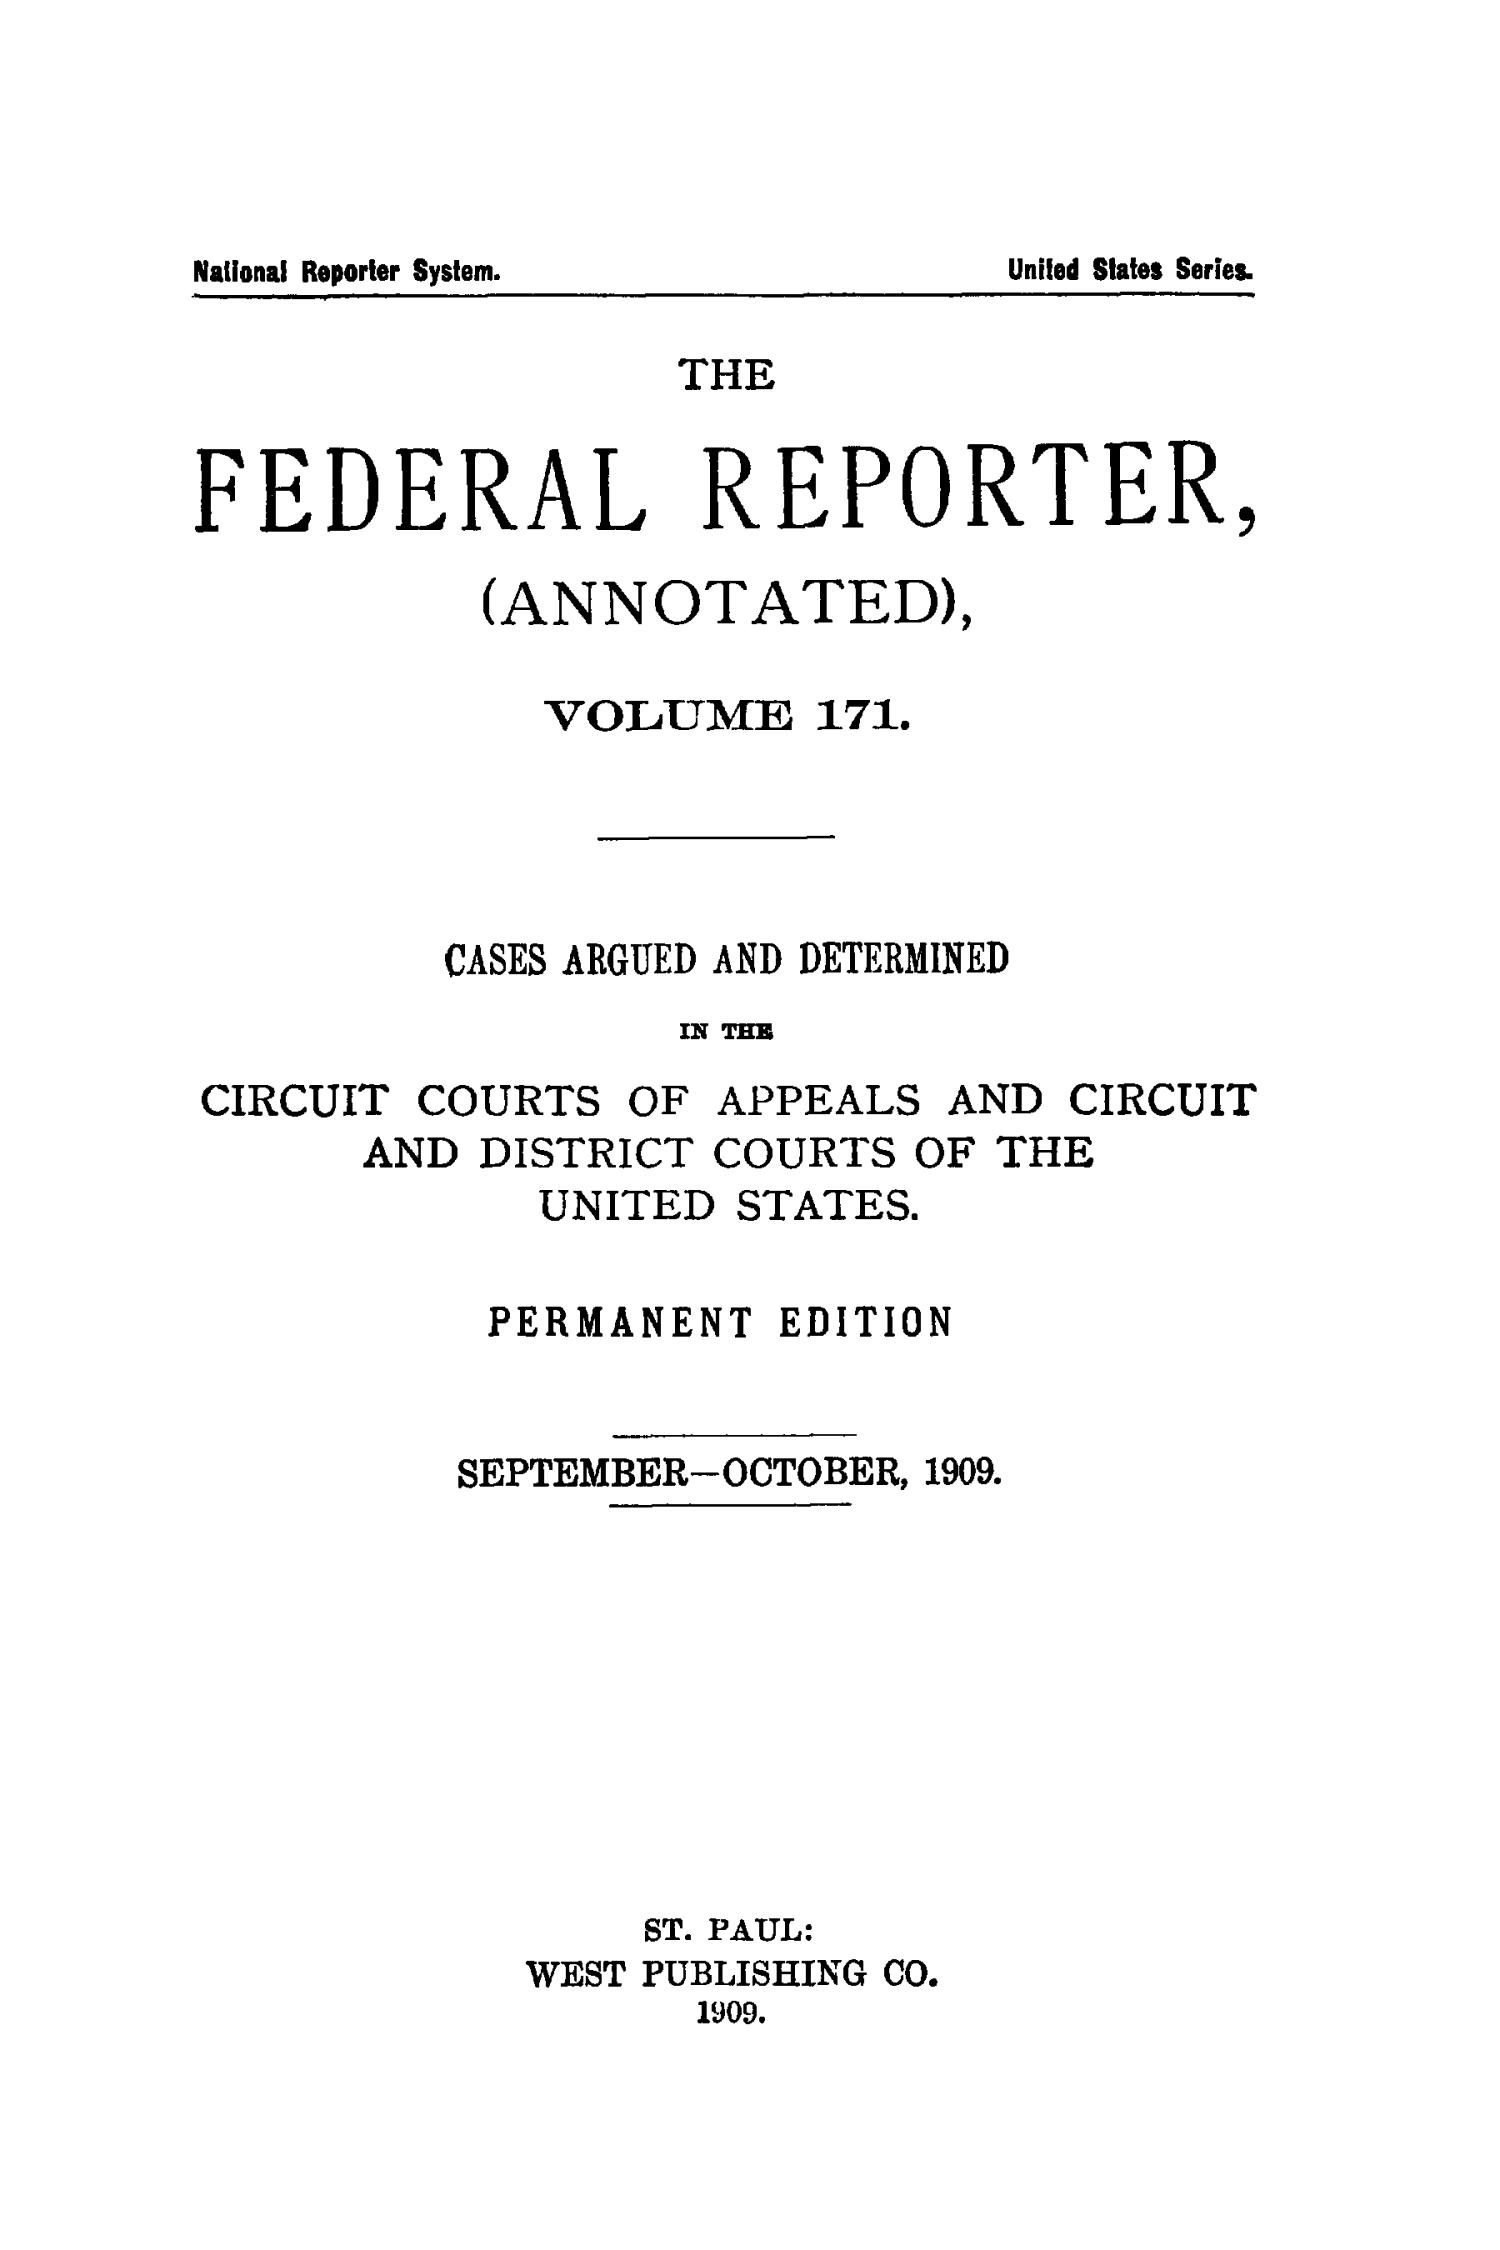 The Federal Reporter (Annotated), Volume 171: Cases Argued and Determined in the Circuit Courts of Appeals and Circuit and District Courts of the United States. September-October, 1909.                                                                                                      Title Page